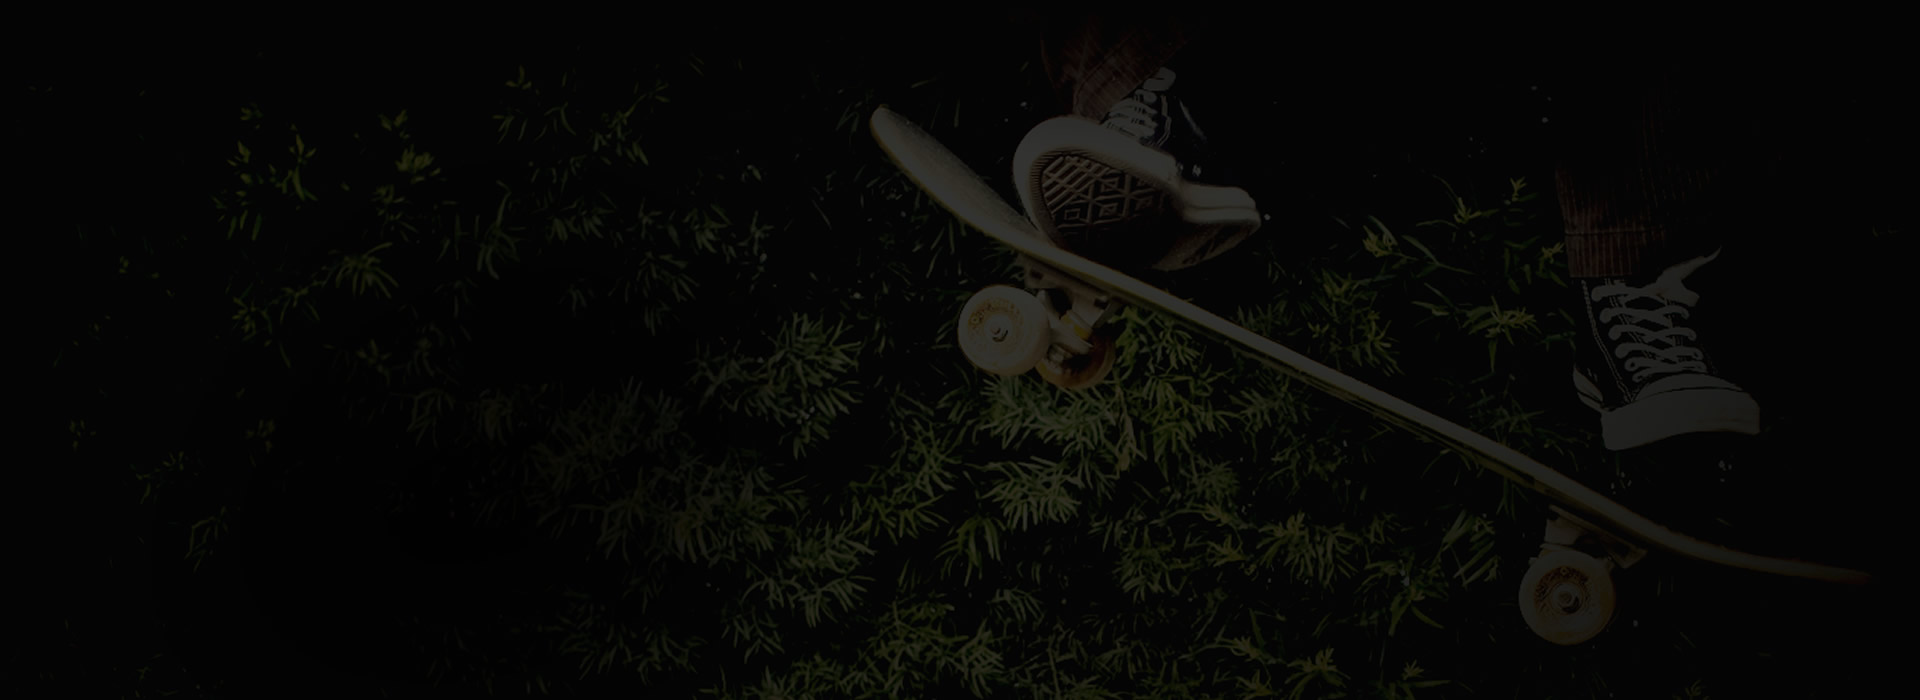 skateboard Slide background